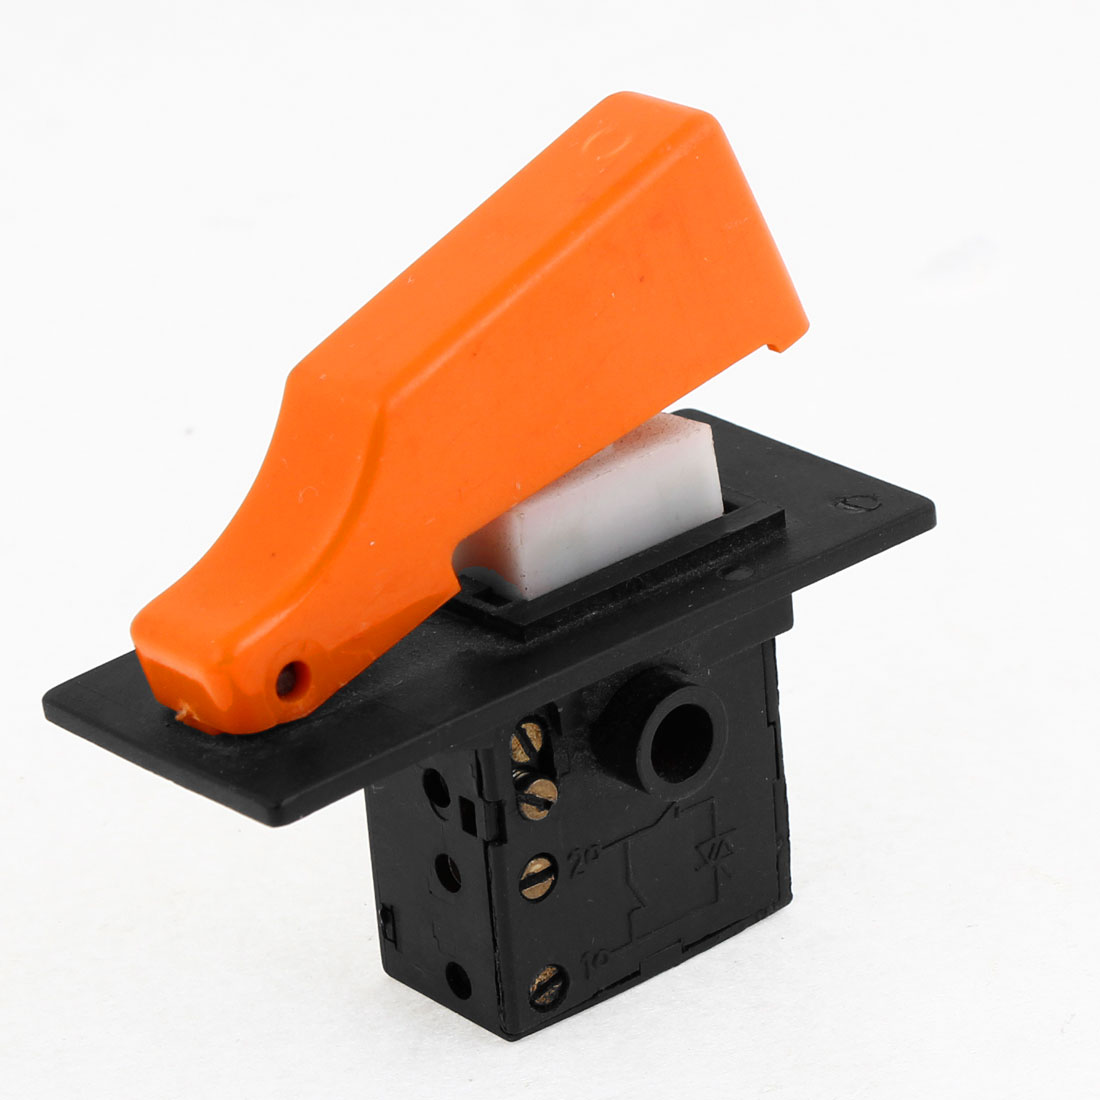 250V 4A Black Orange Replacing Part for Electric Tool Trigger Switch Electric Hammer